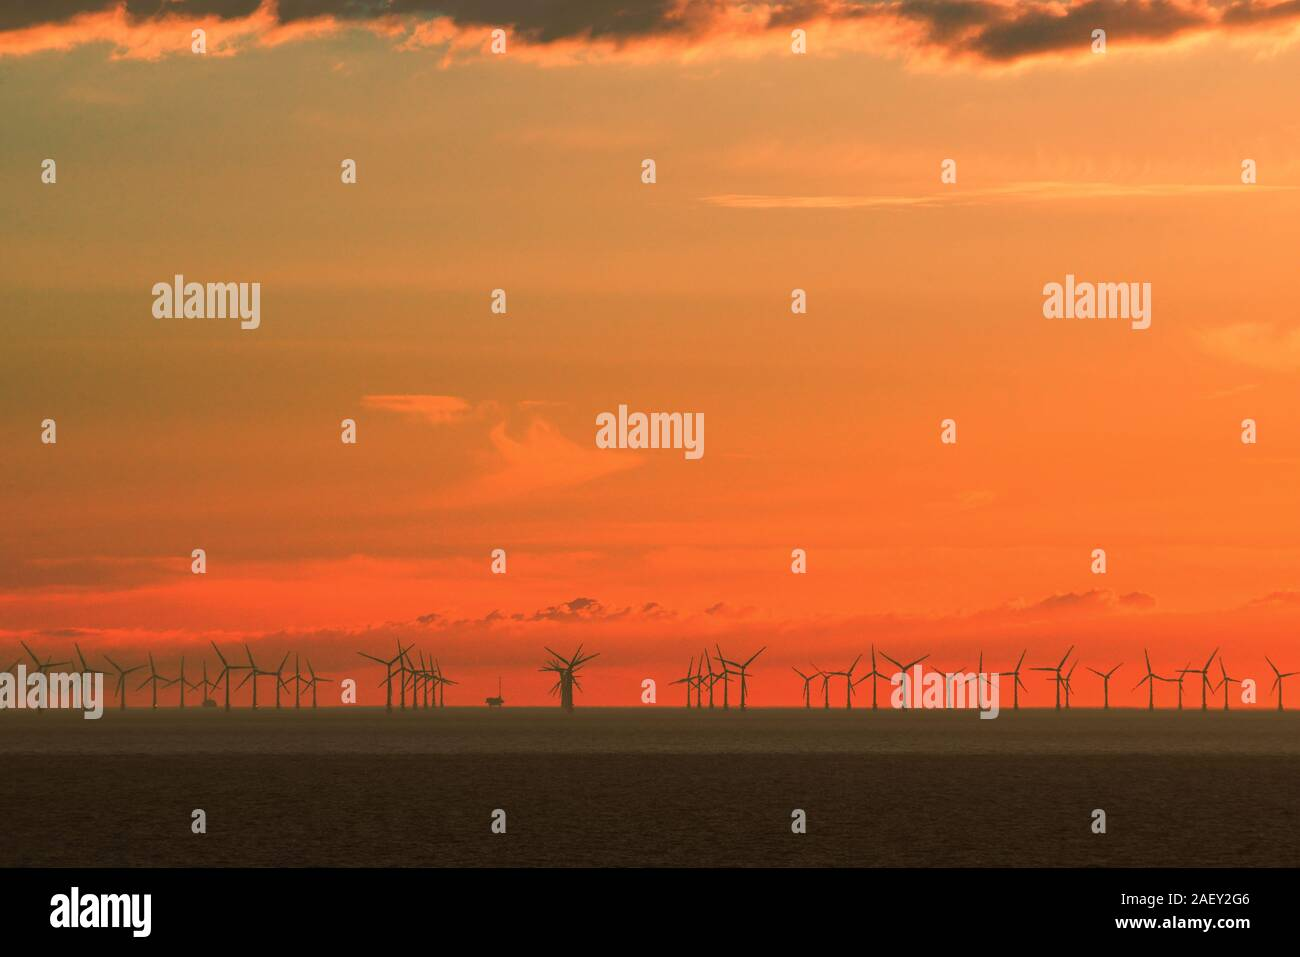 An offshore wind farm in the North Sea at sunset. Stock Photo